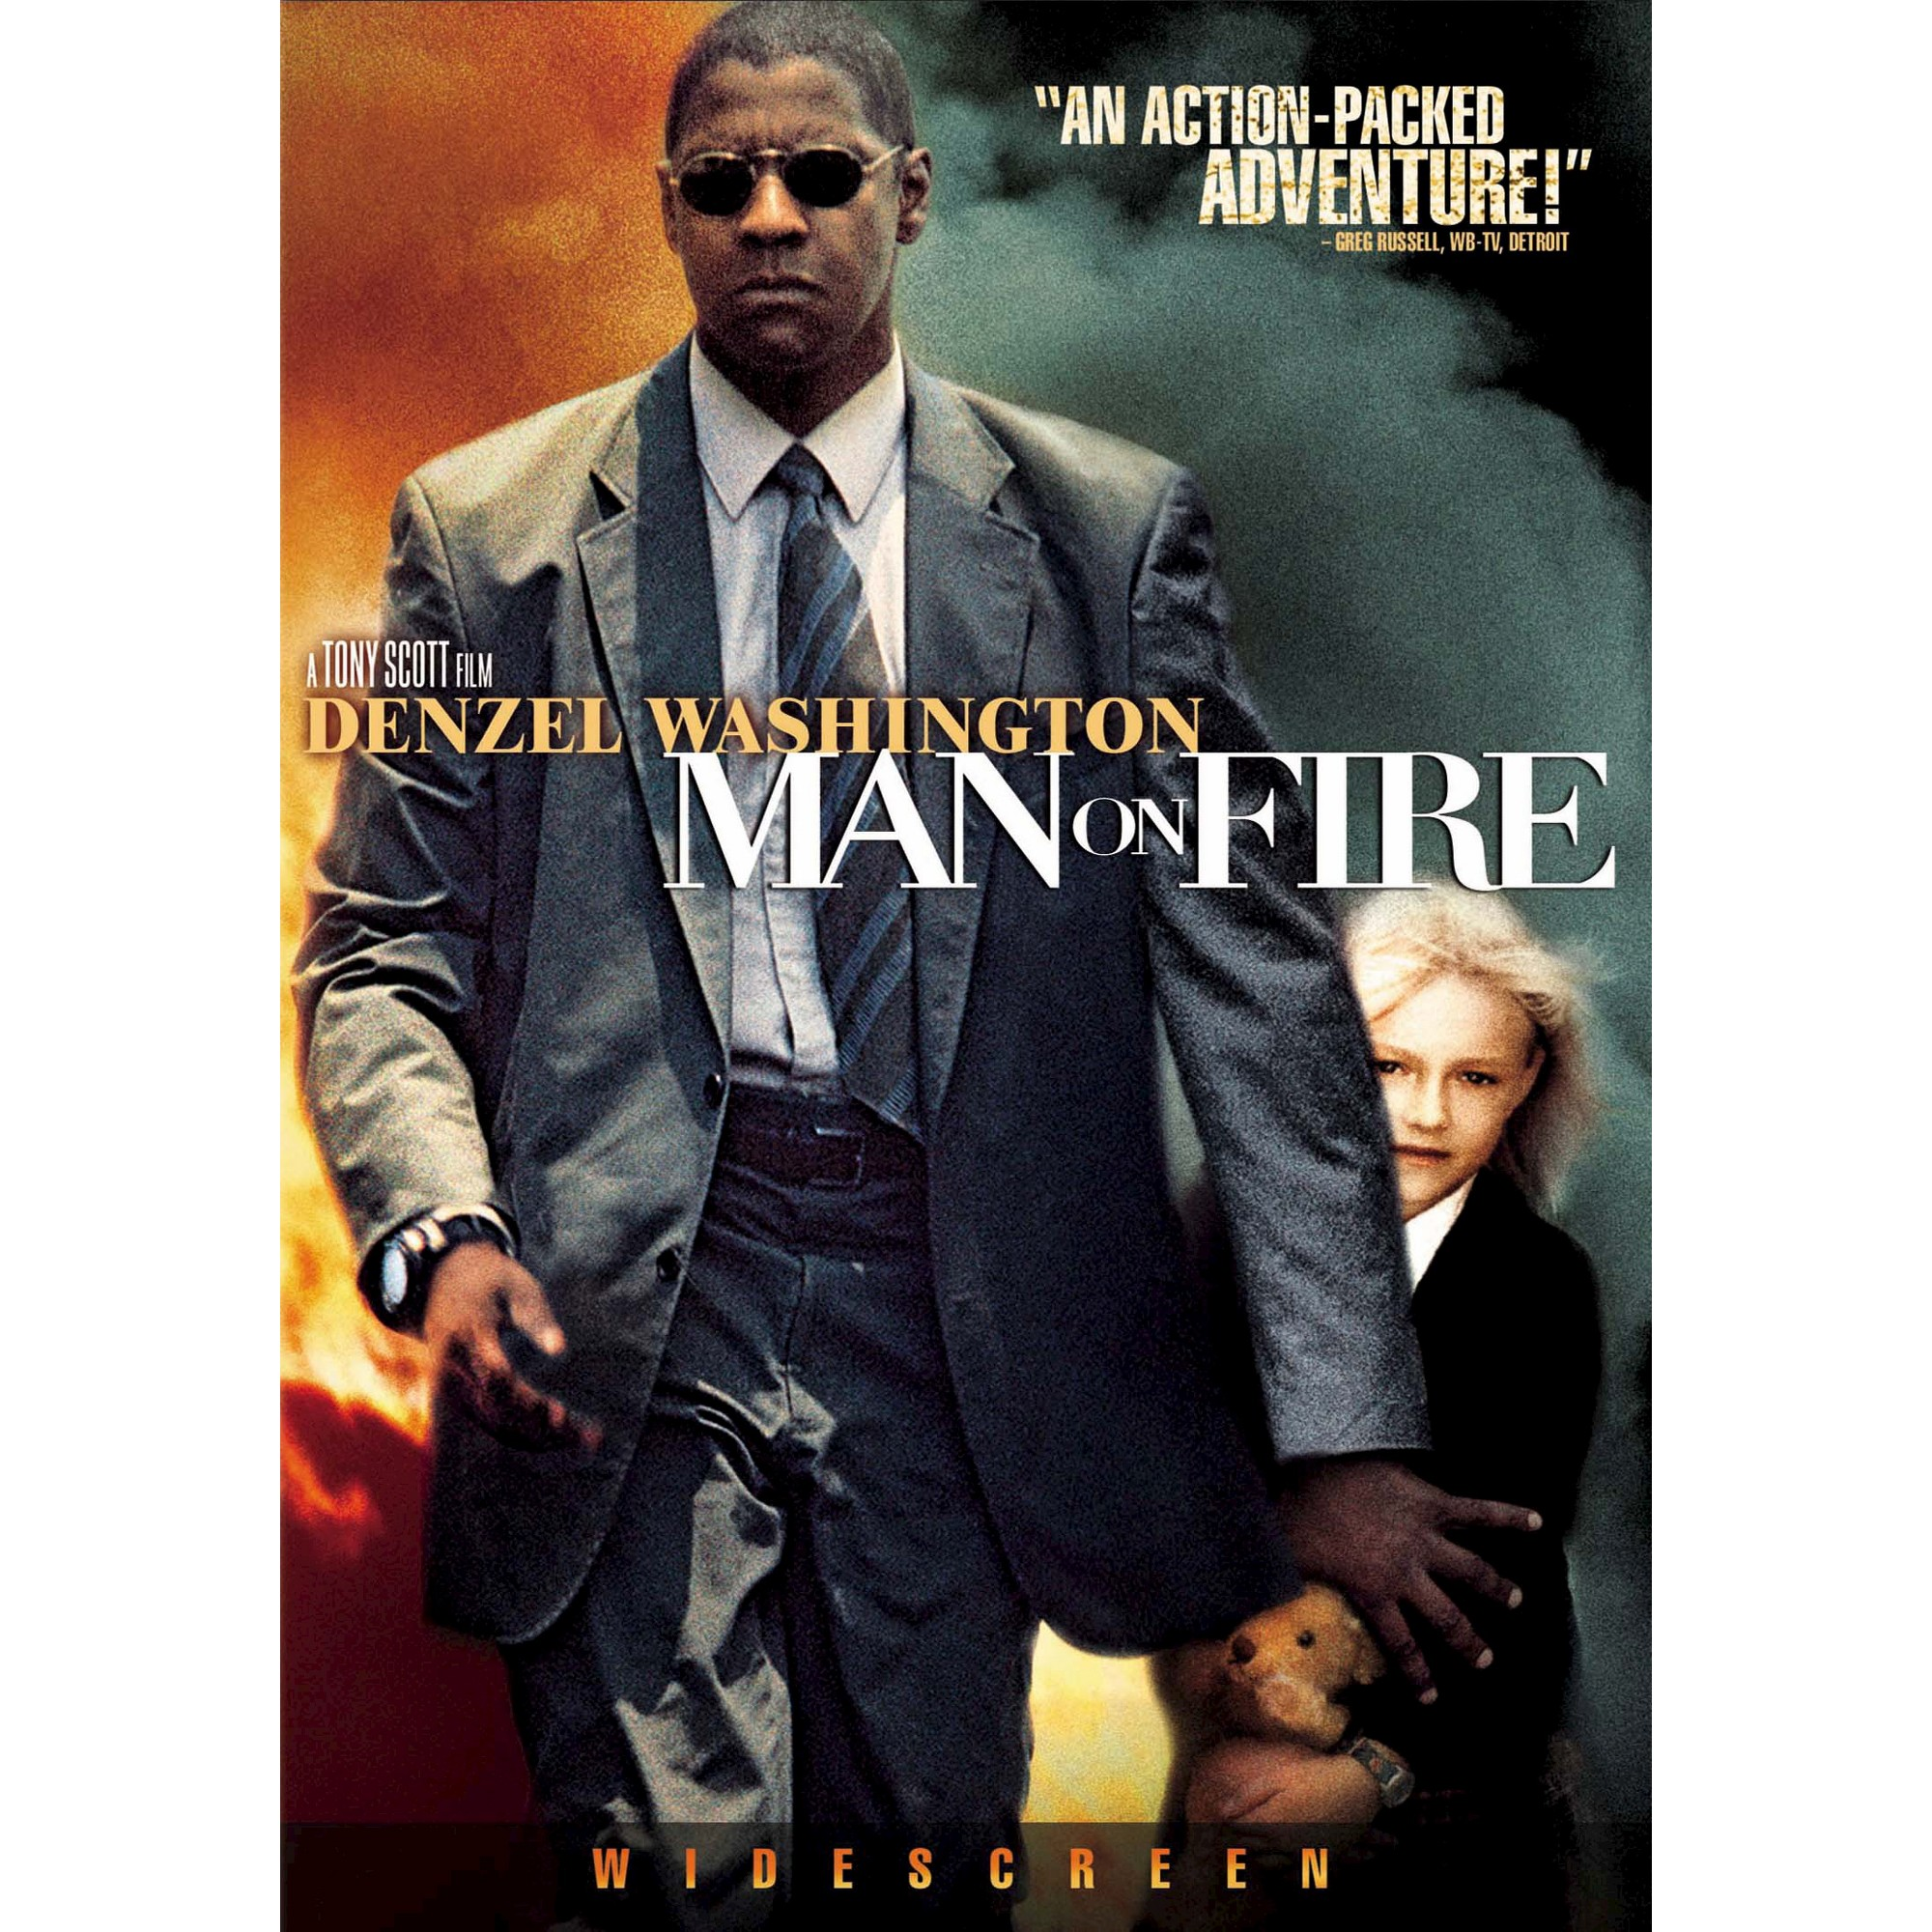 Man On Fire Dvd In 2021 Man On Fire Fire Movie Good Movies